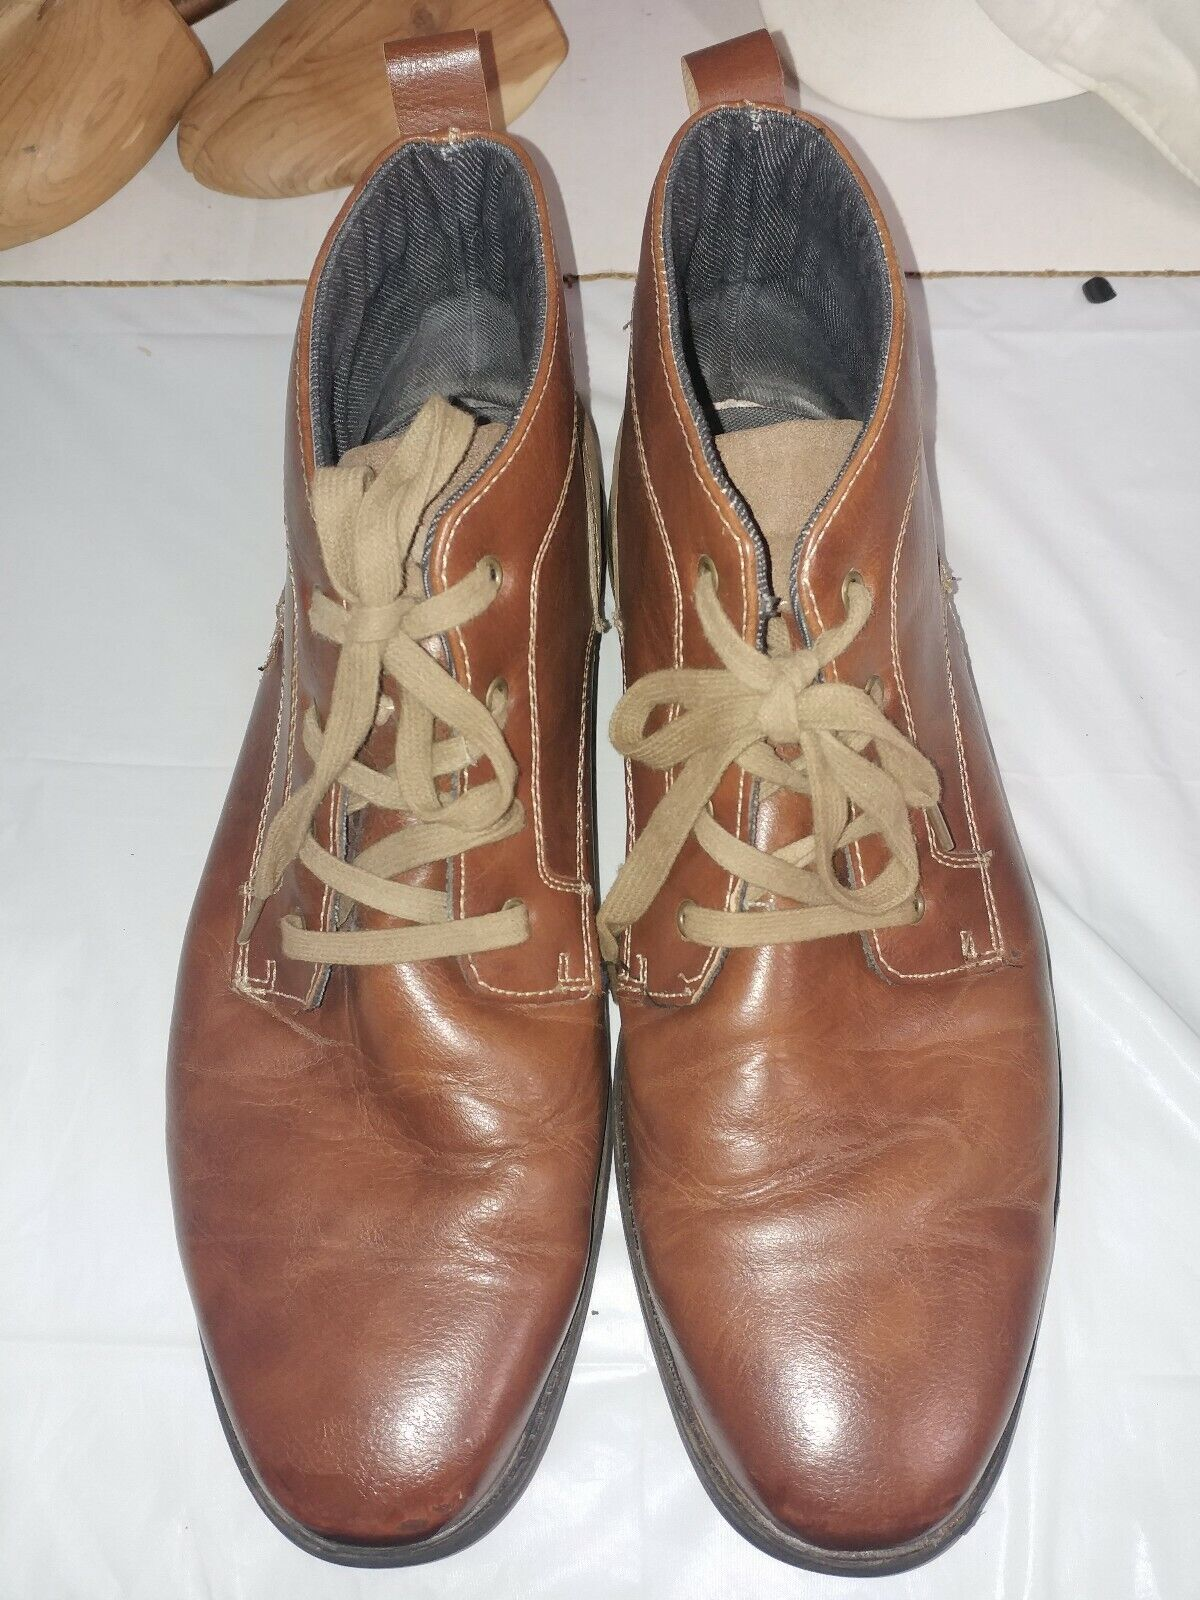 FILA LEATHER Brown HIGH ANKLE BOOTS MEN SIZE 13